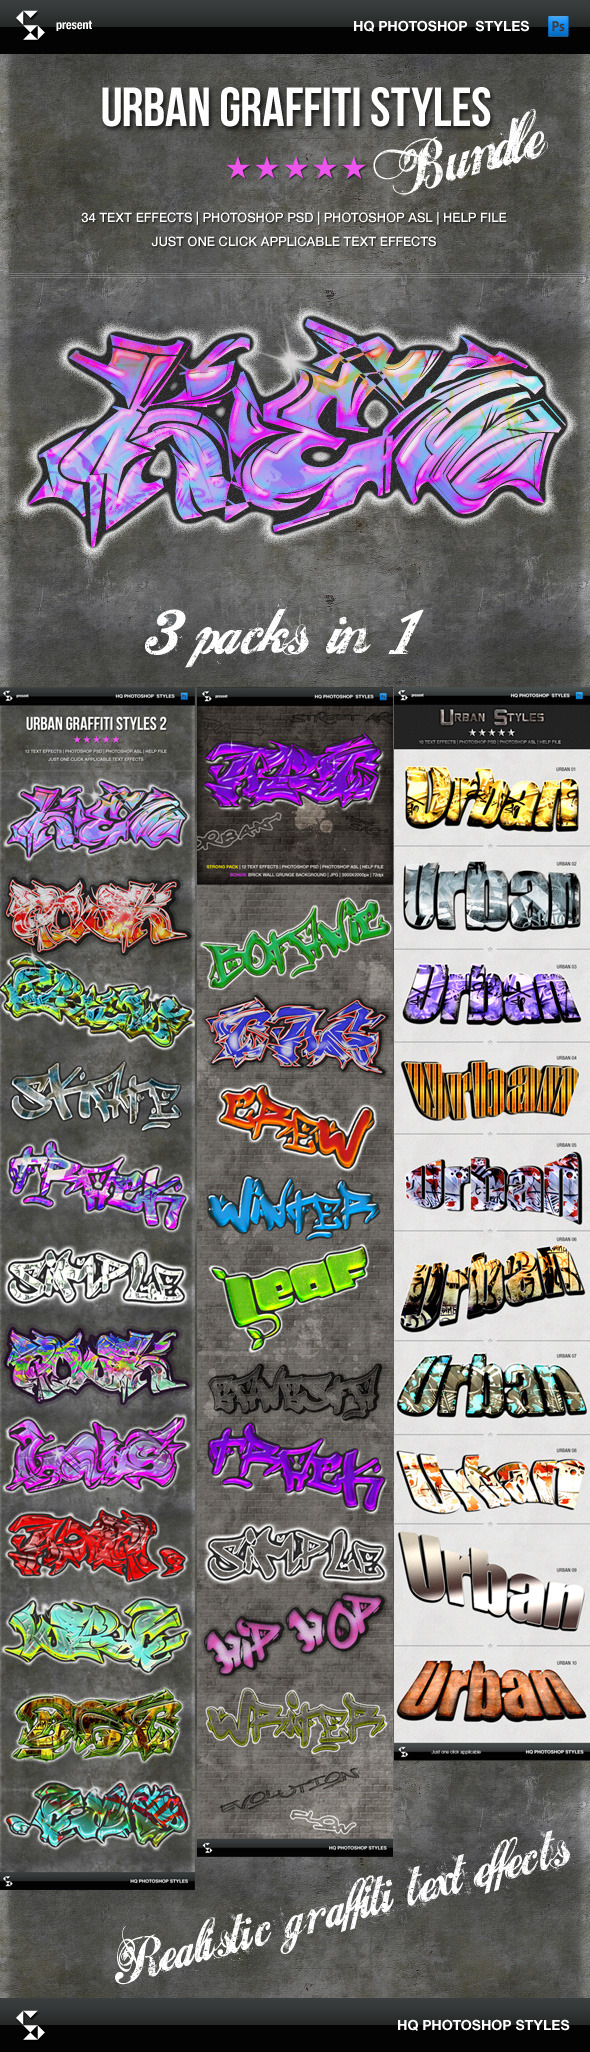 Urban Graffiti Styles - Bundle